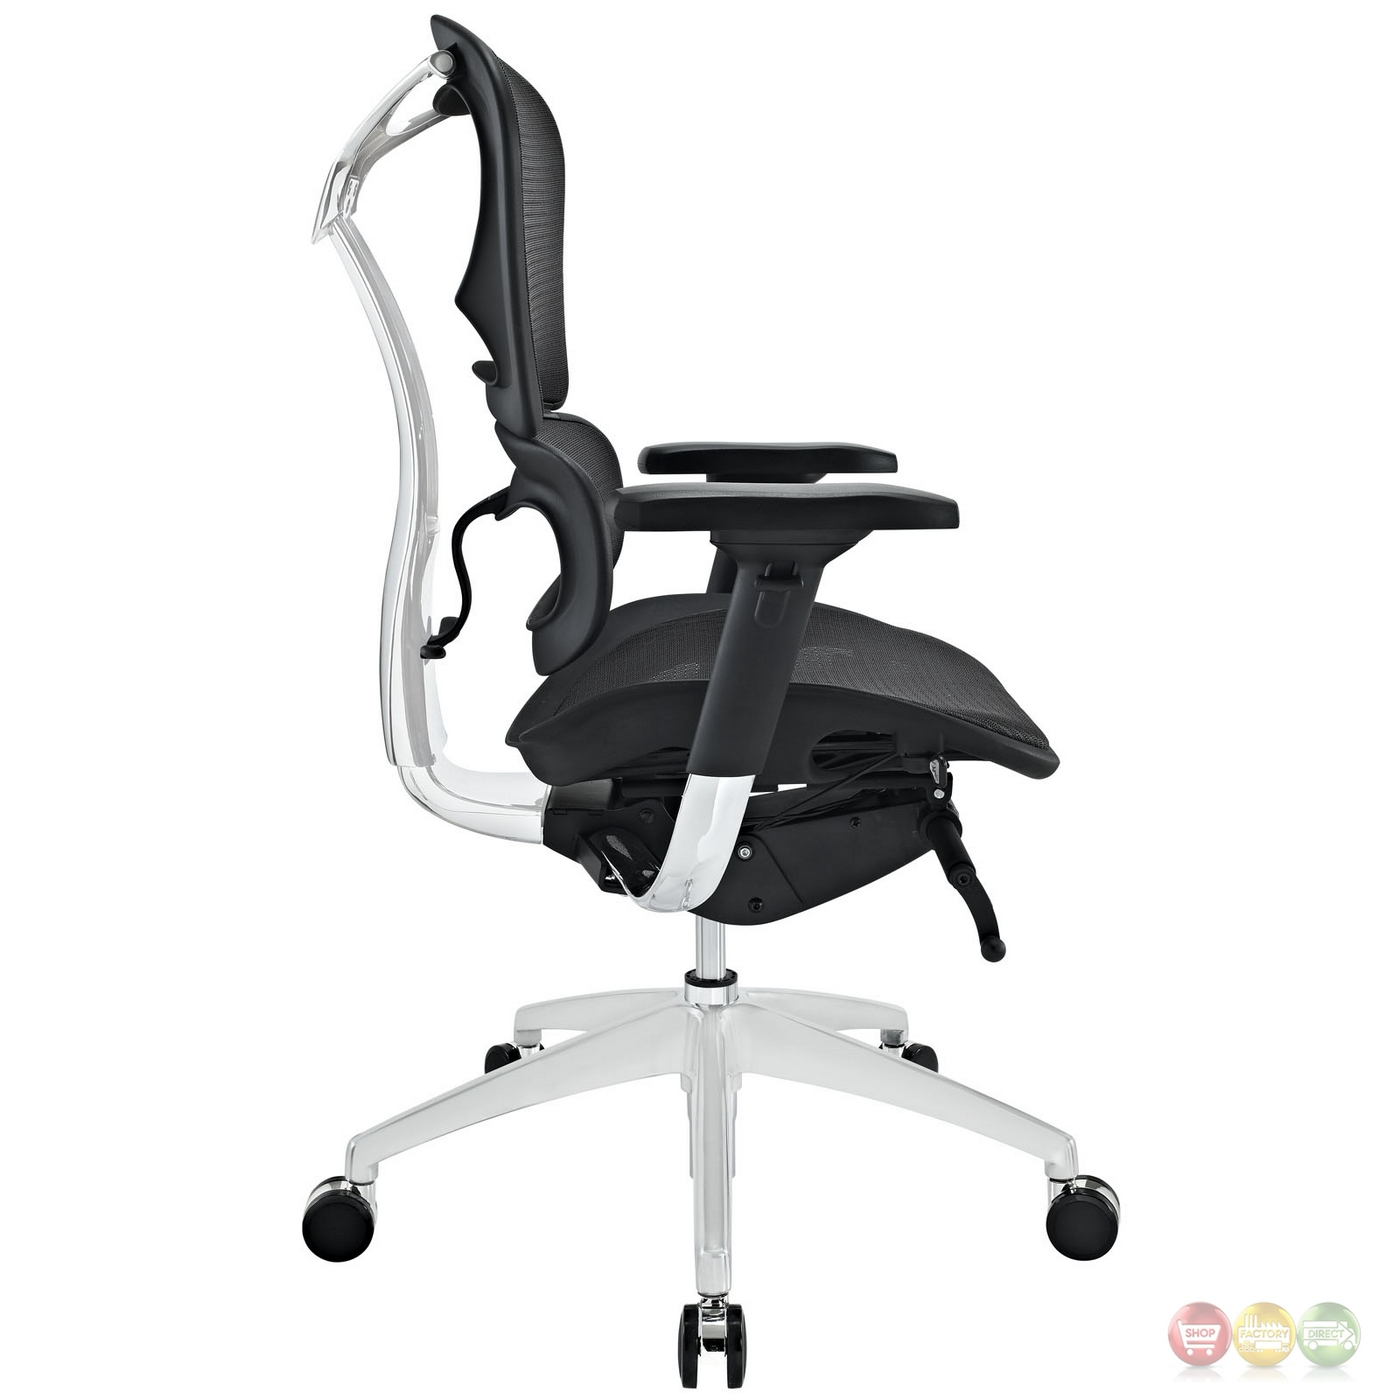 Back Support Office Chair Lift Mid Back Ergonomic Mesh Fabric Office Chair W Lumbar